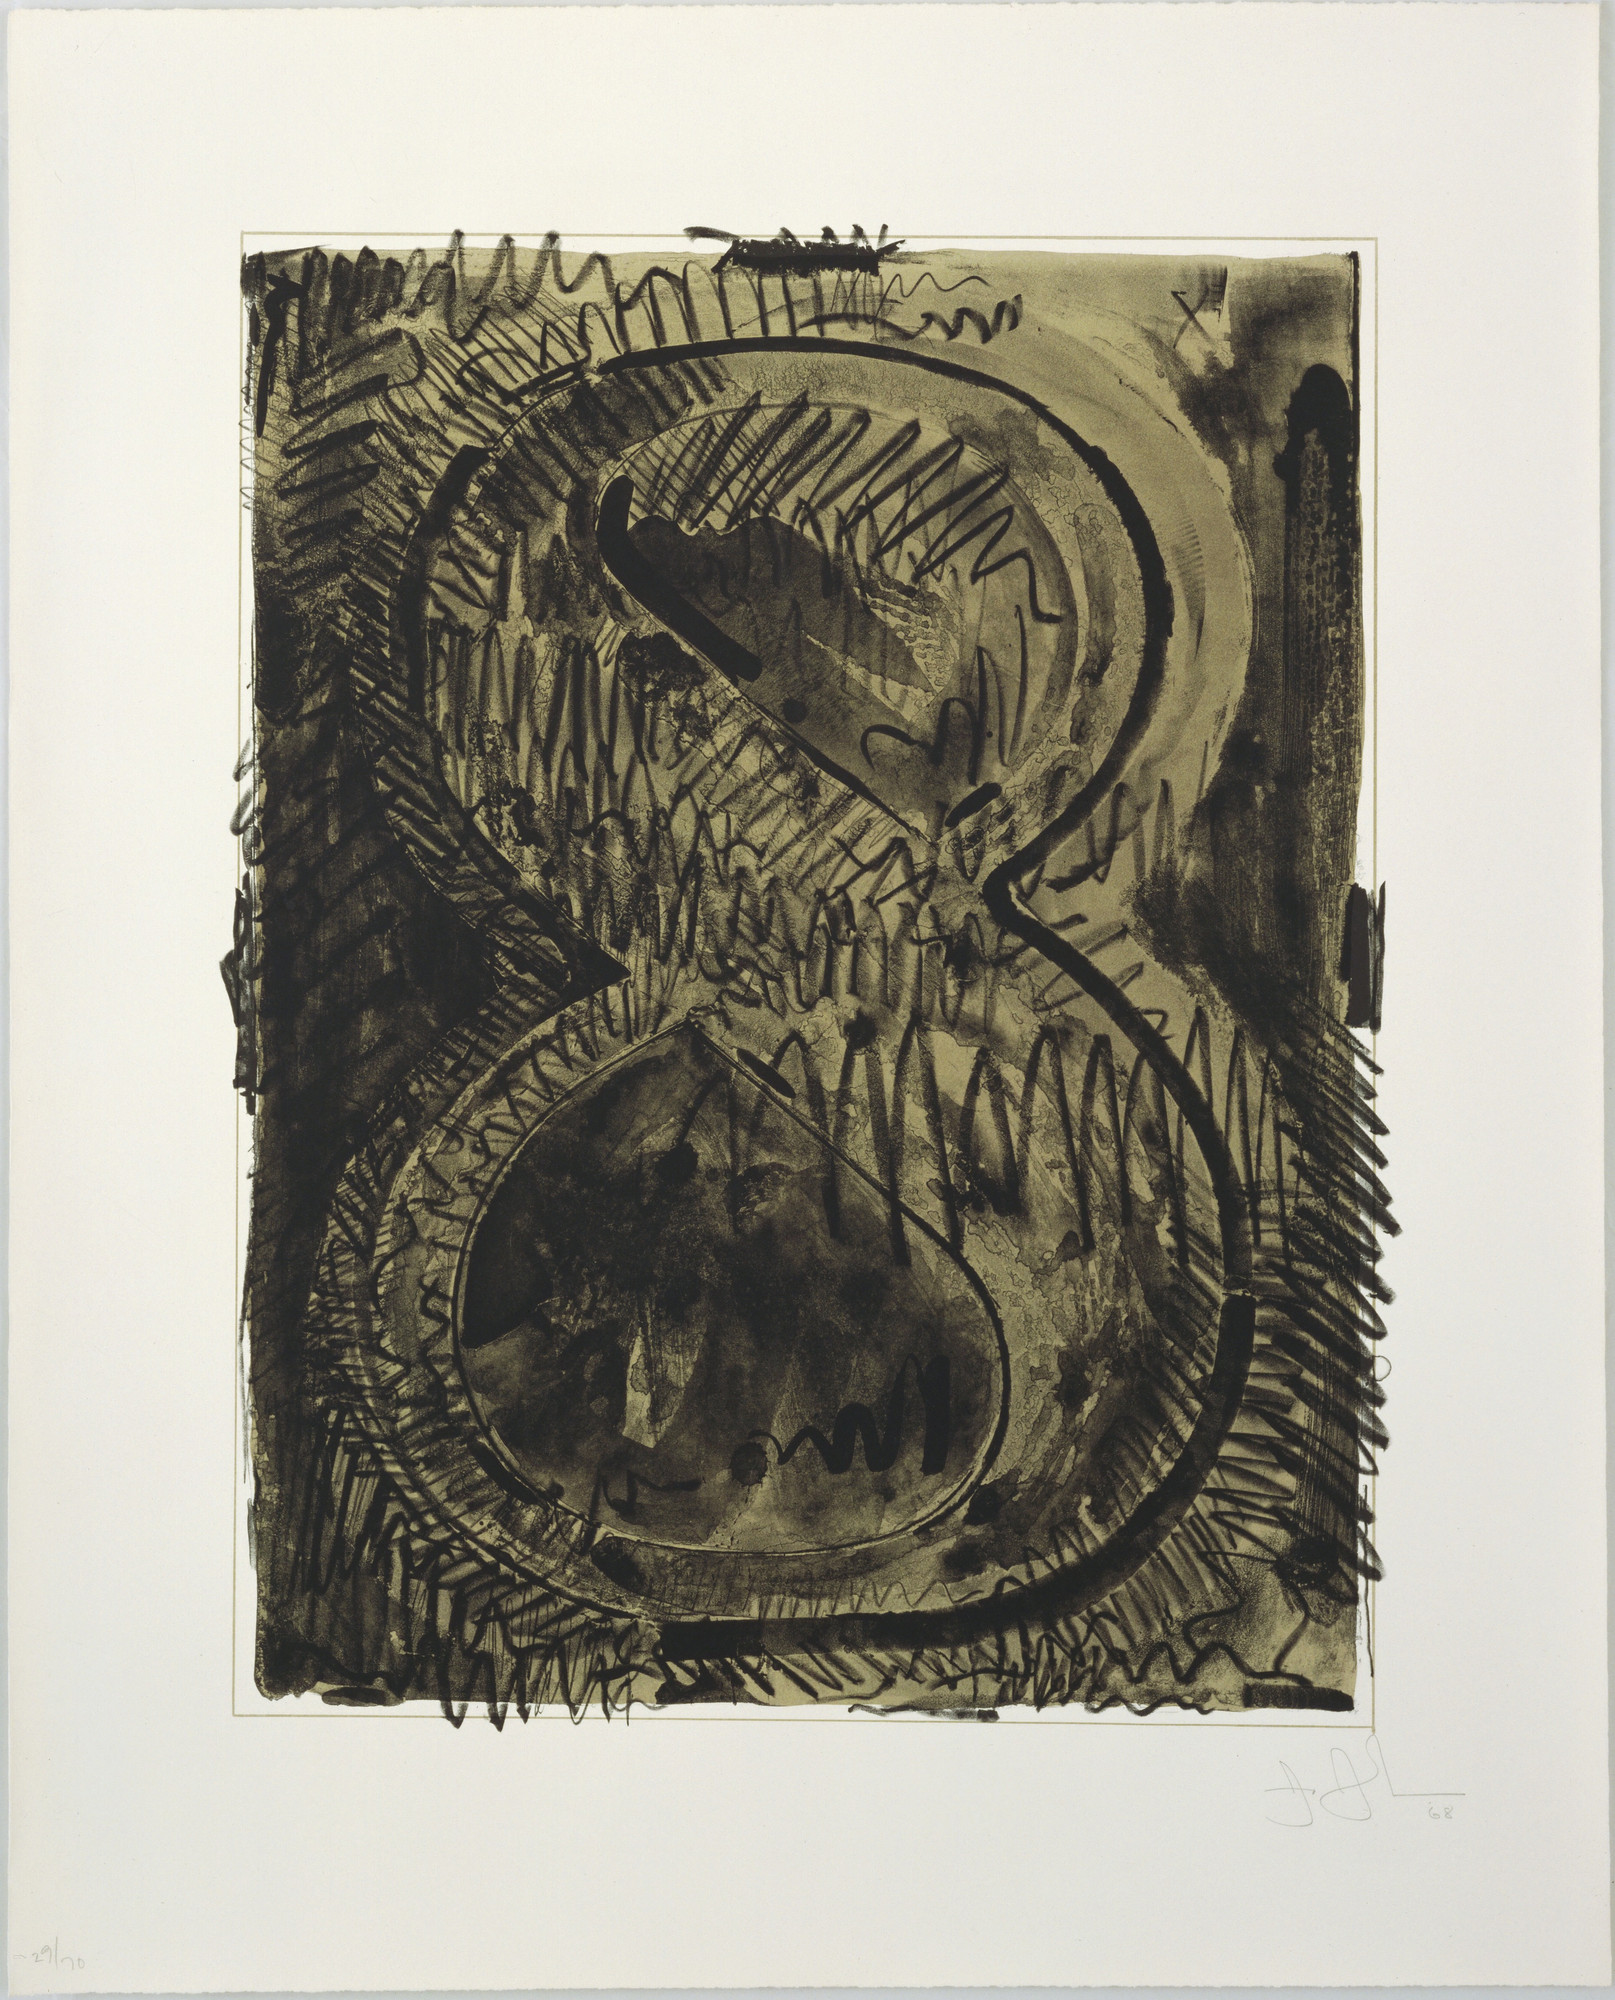 Jasper Johns. Figure 8 from Black Numeral Series. 1968